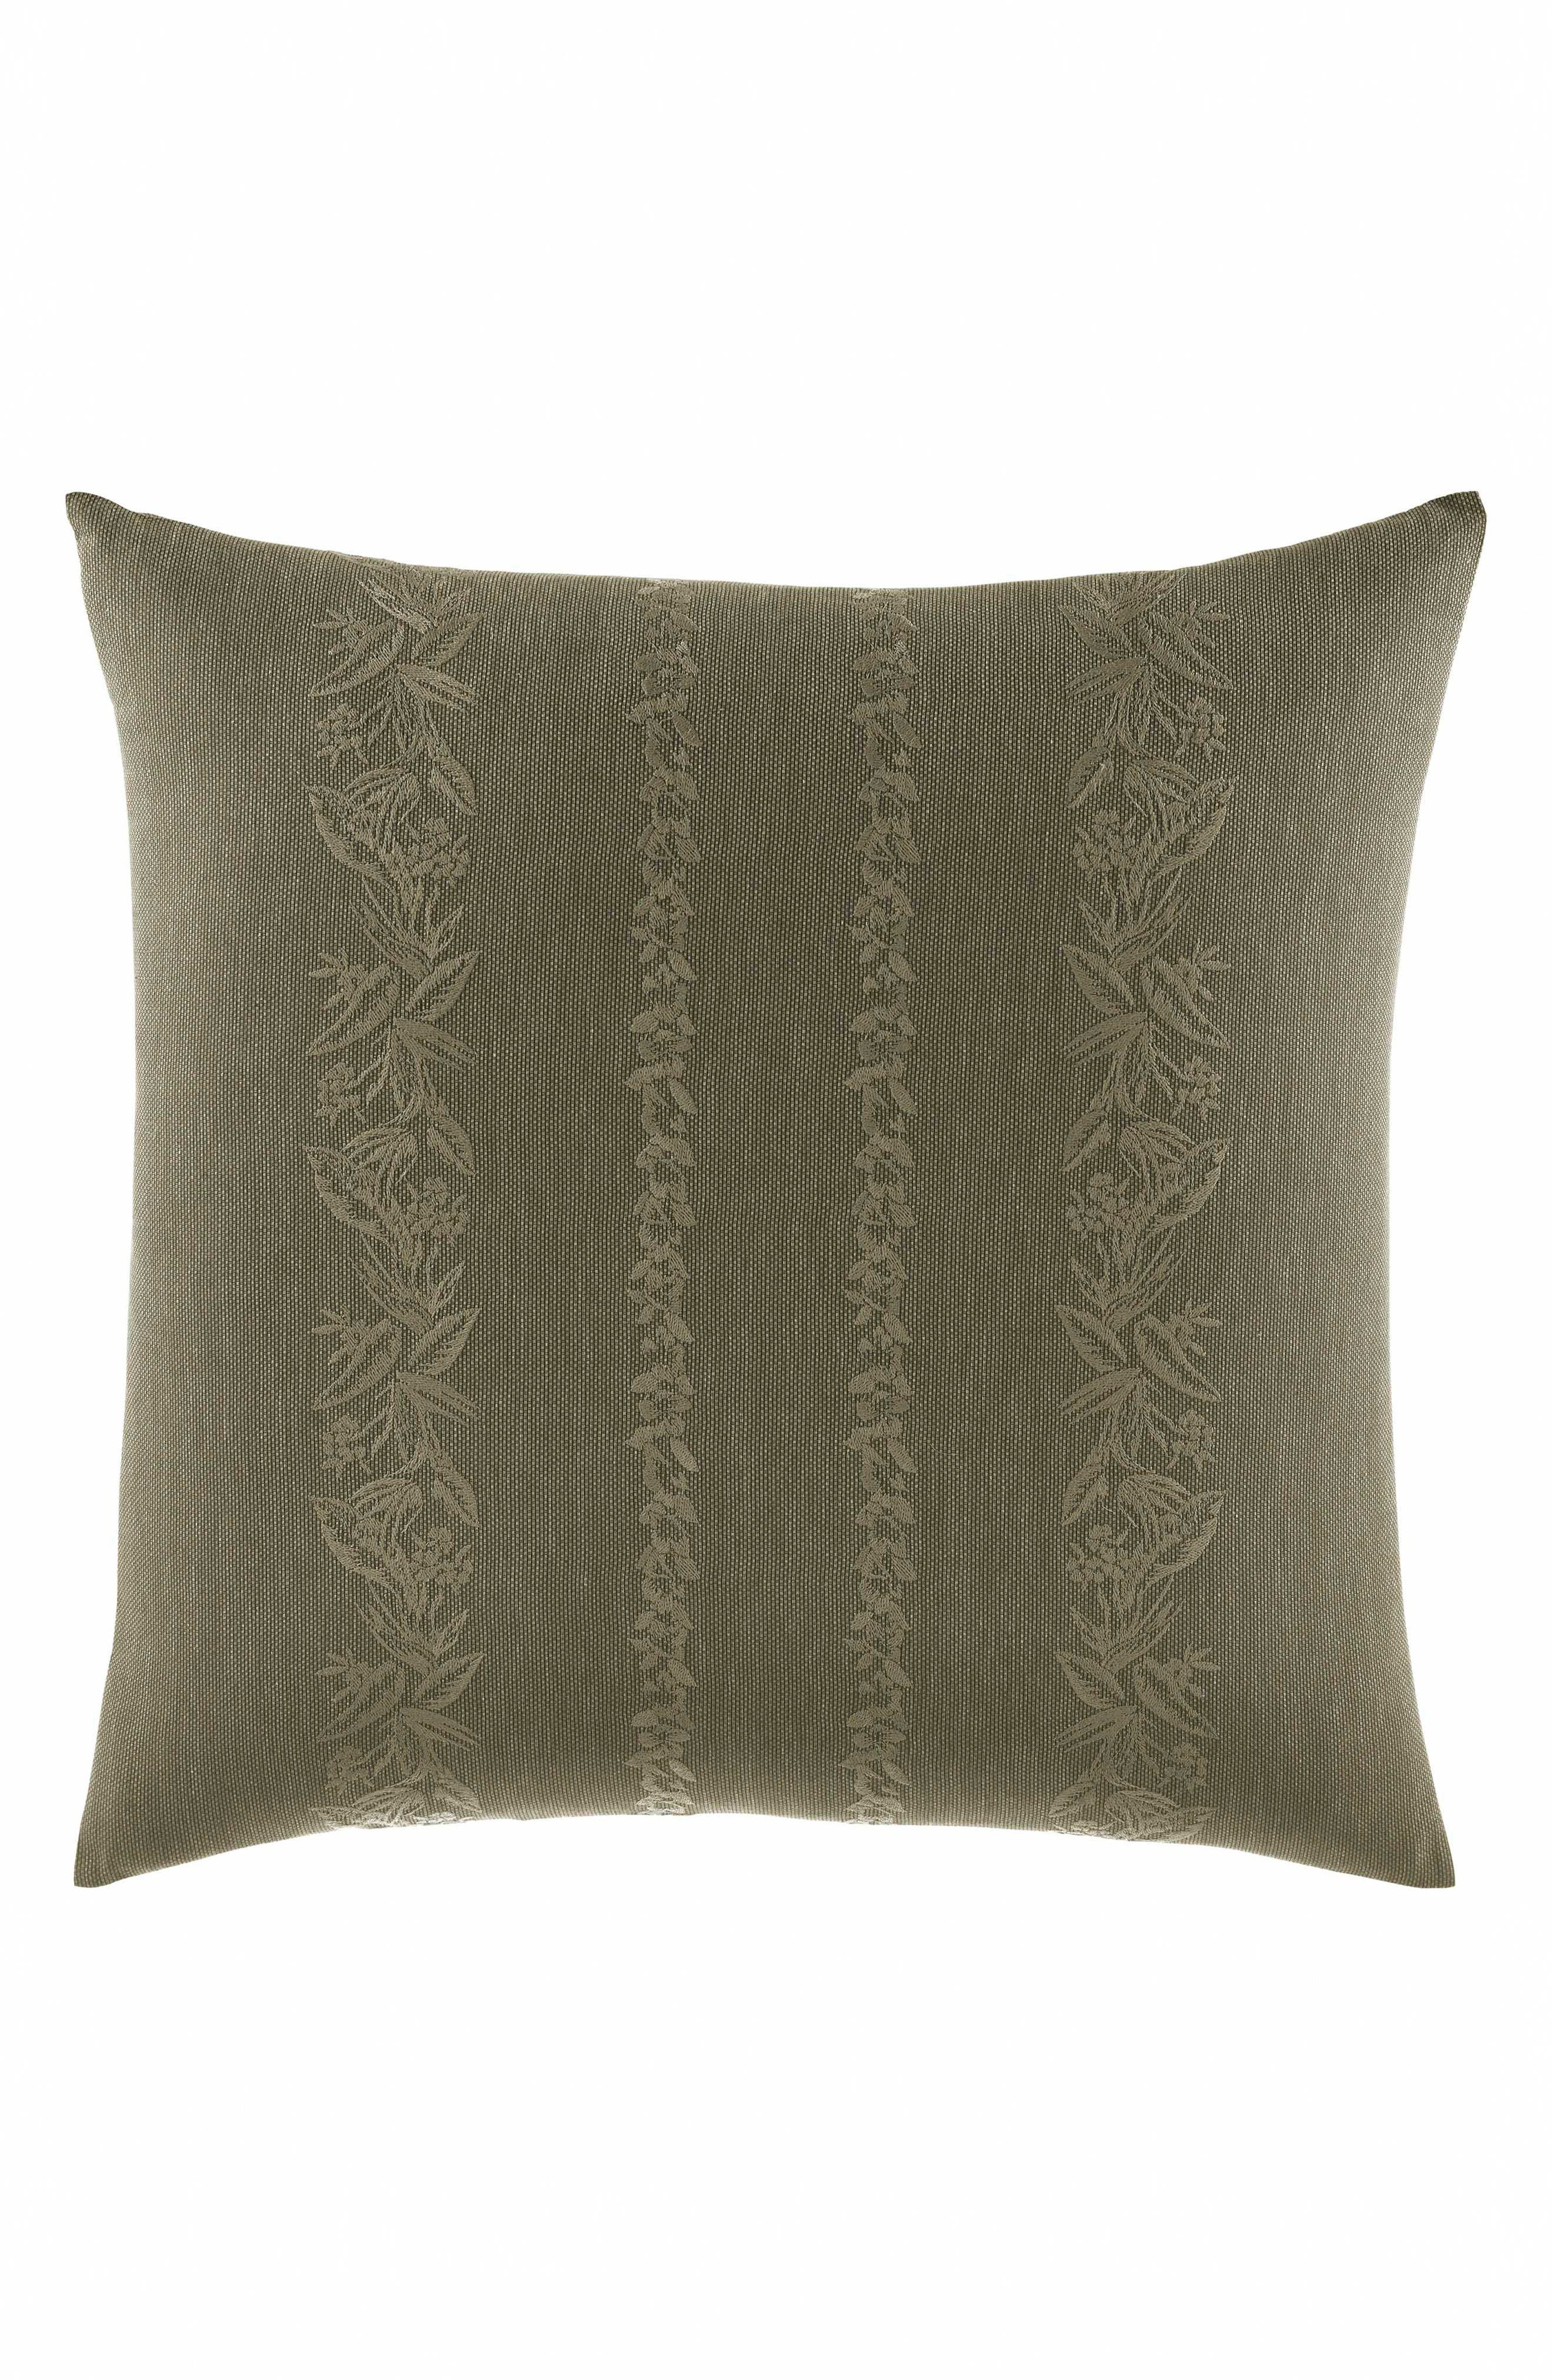 Alternate Image 1 Selected - Tommy Bahama Nador Linen Pillow